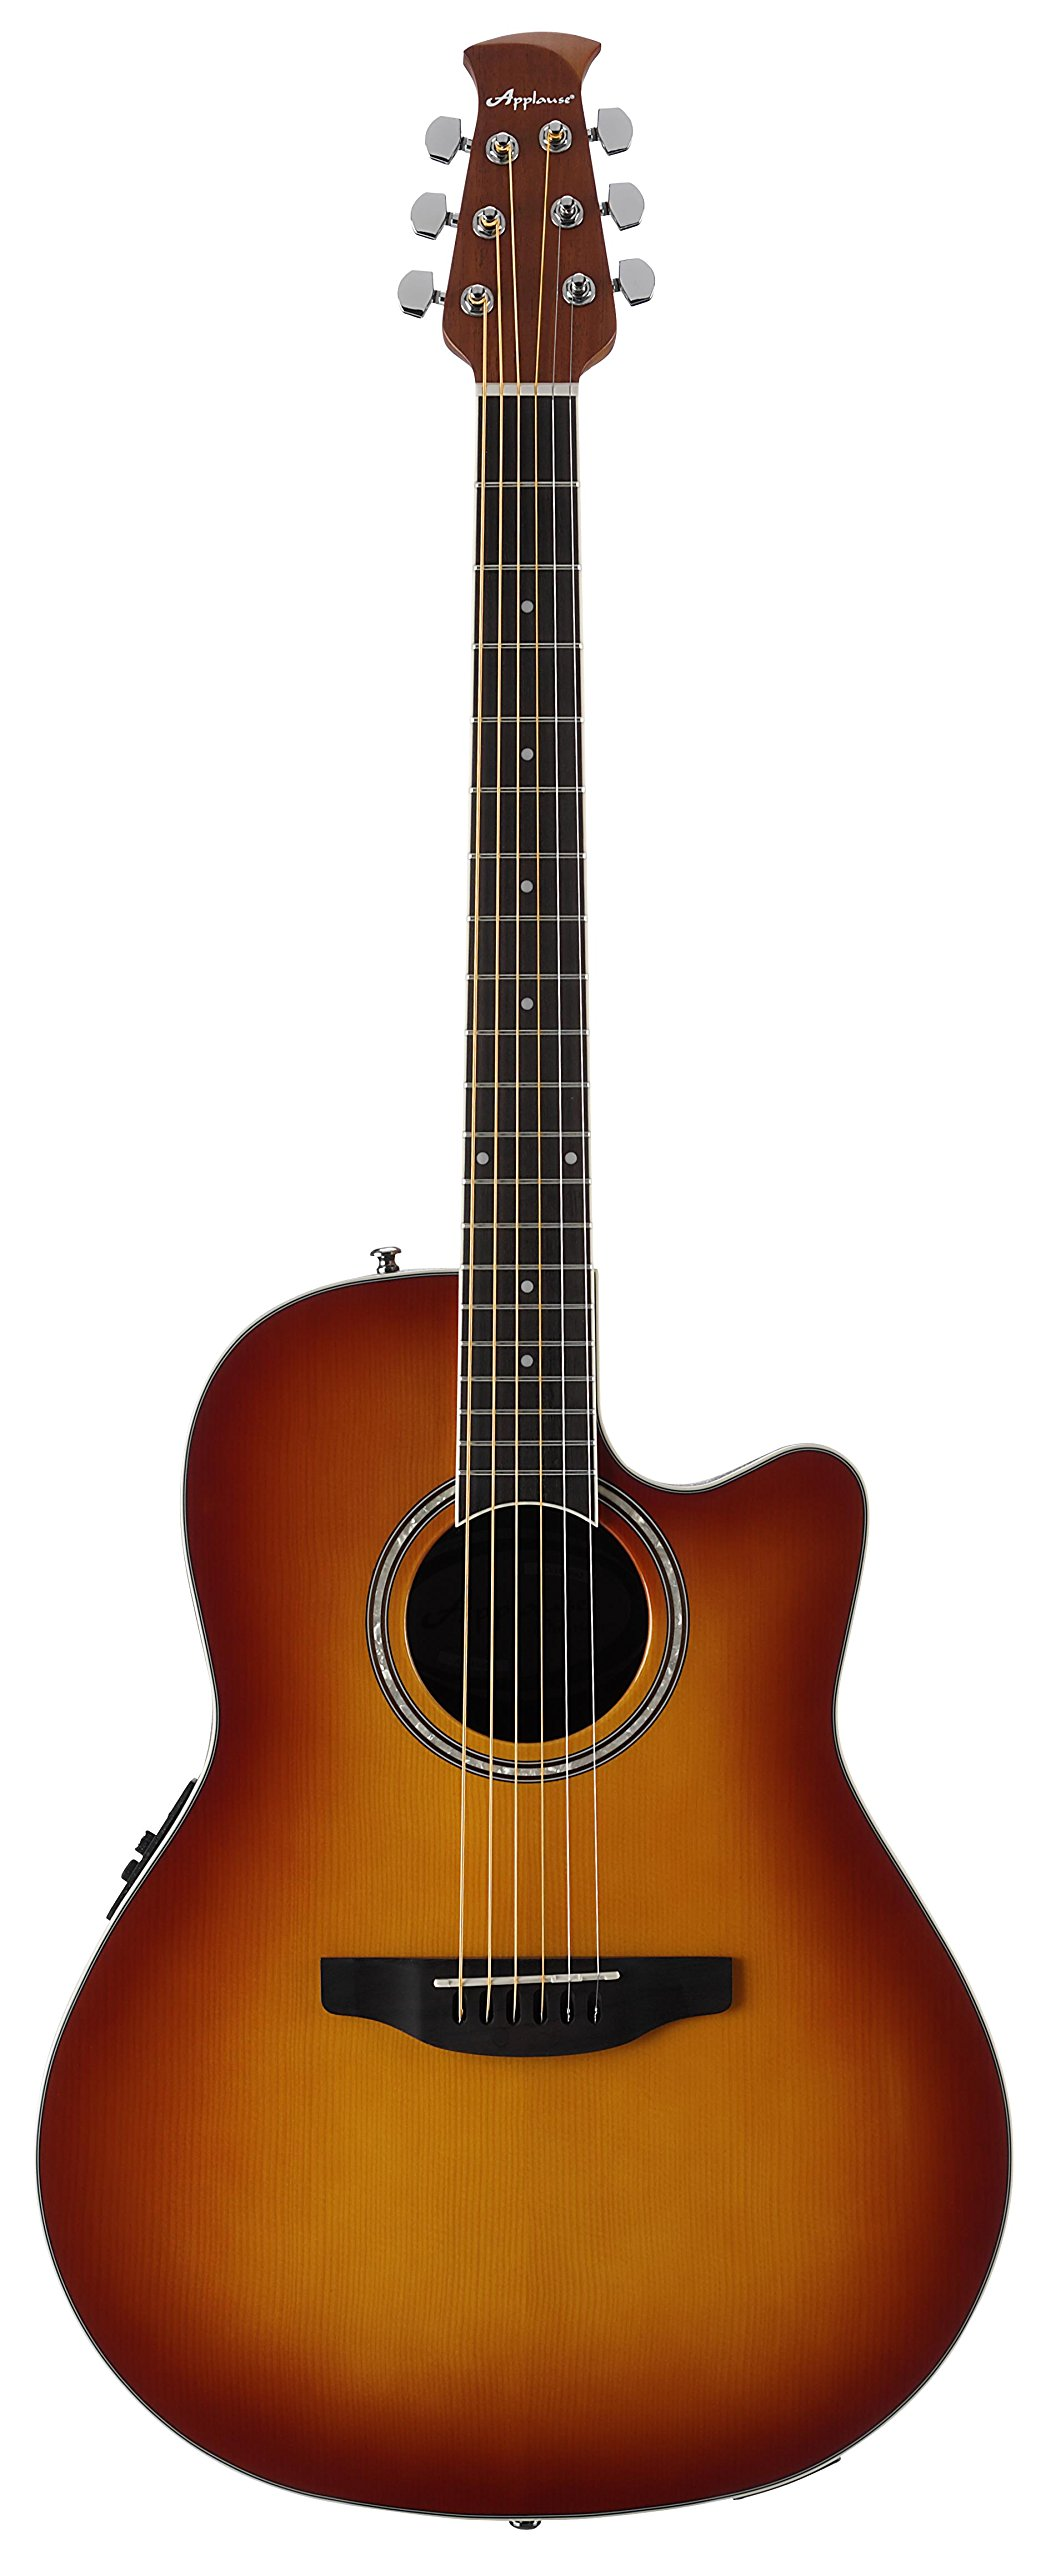 Ovation Applause 6 String Acoustic-Electric Guitar, Right, Honey Burst, Mid-Depth (AB24II-HB) by Ovation